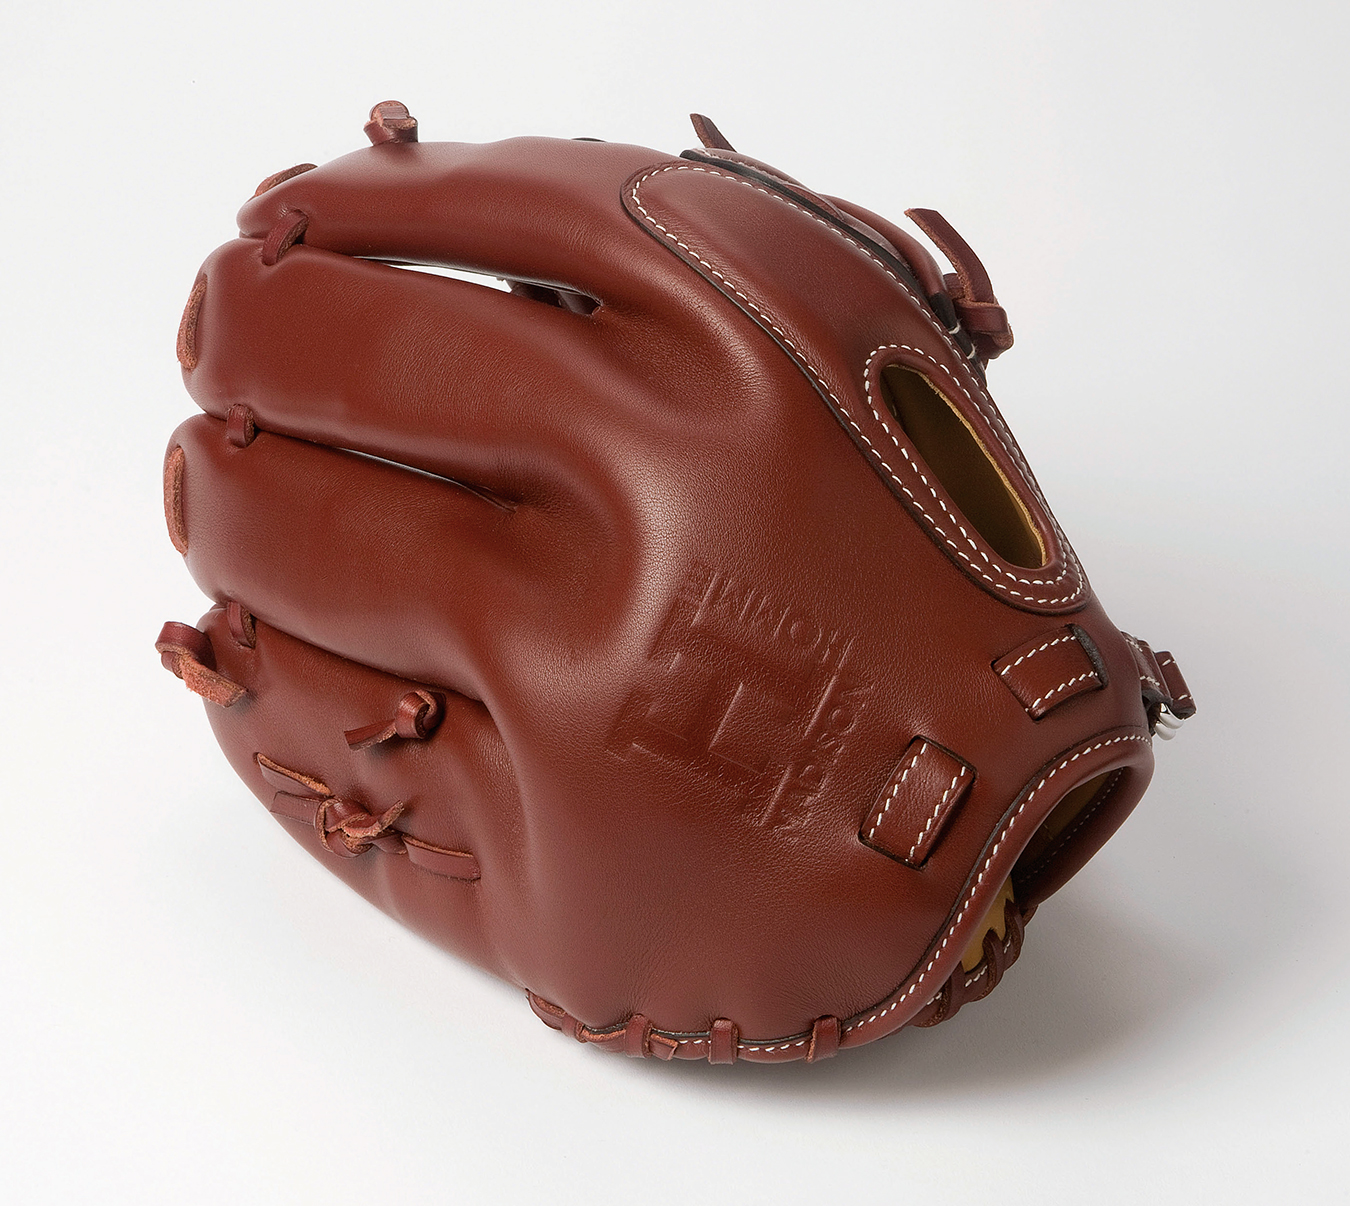 NUVO Magazine: The Hermès Baseball Glove